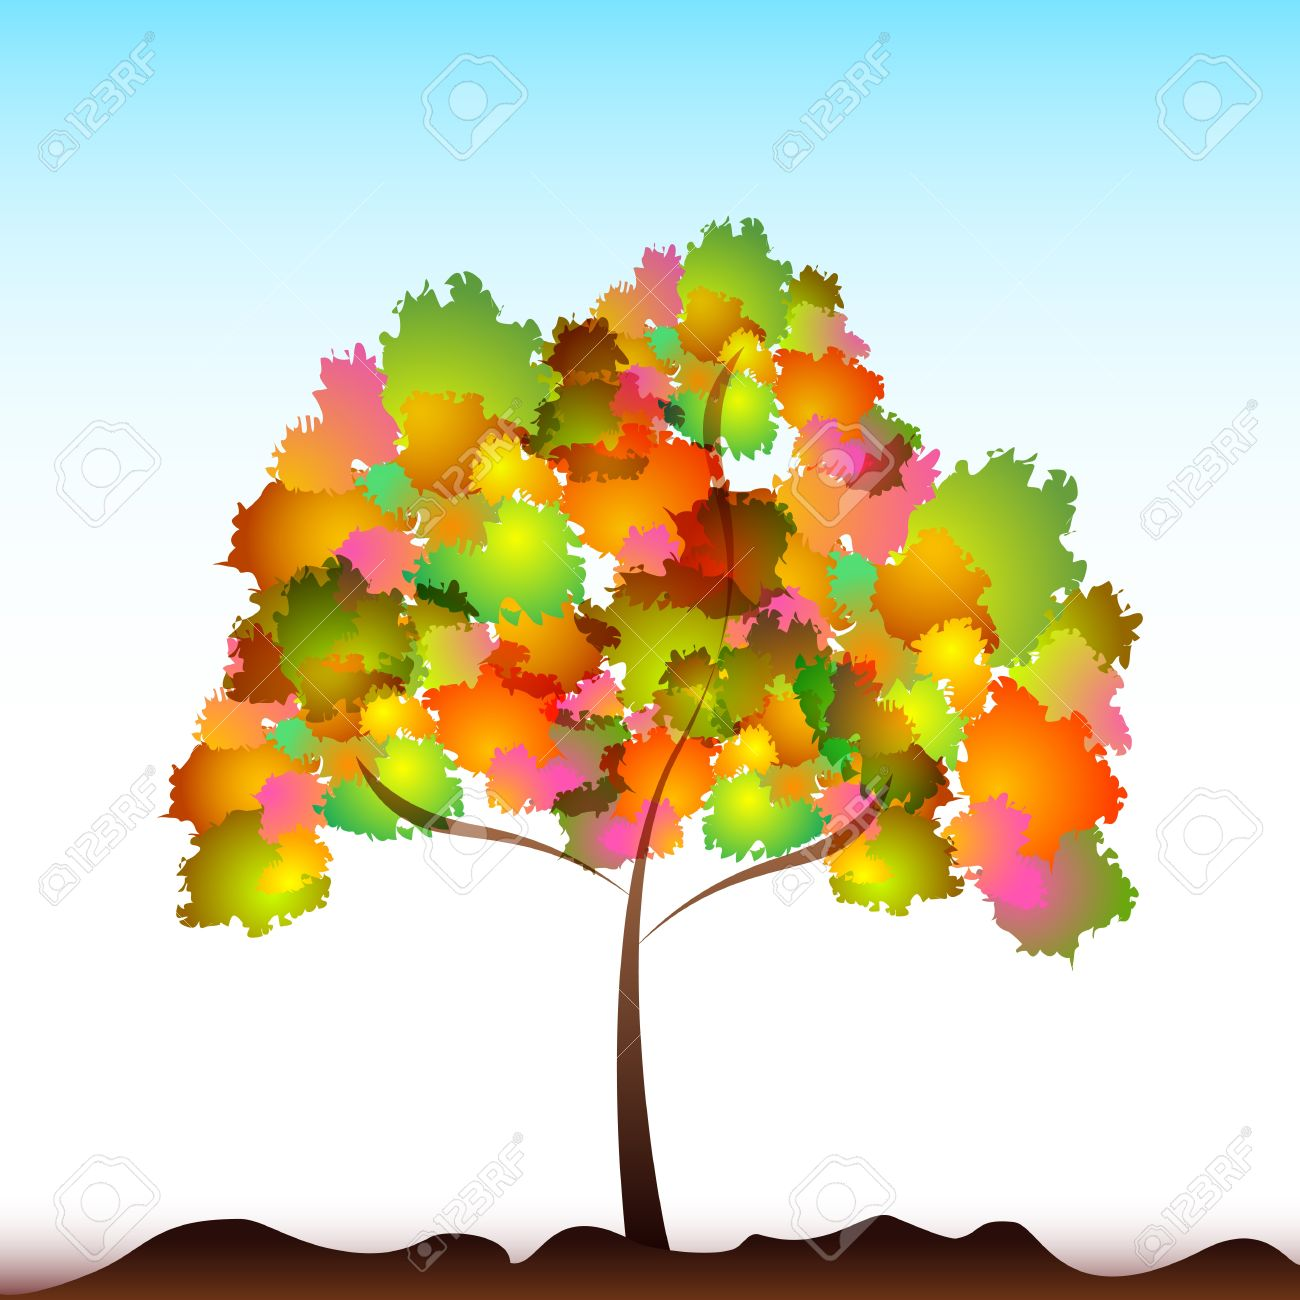 illustration of colorful tree on isolated background Stock Vector - 9269487